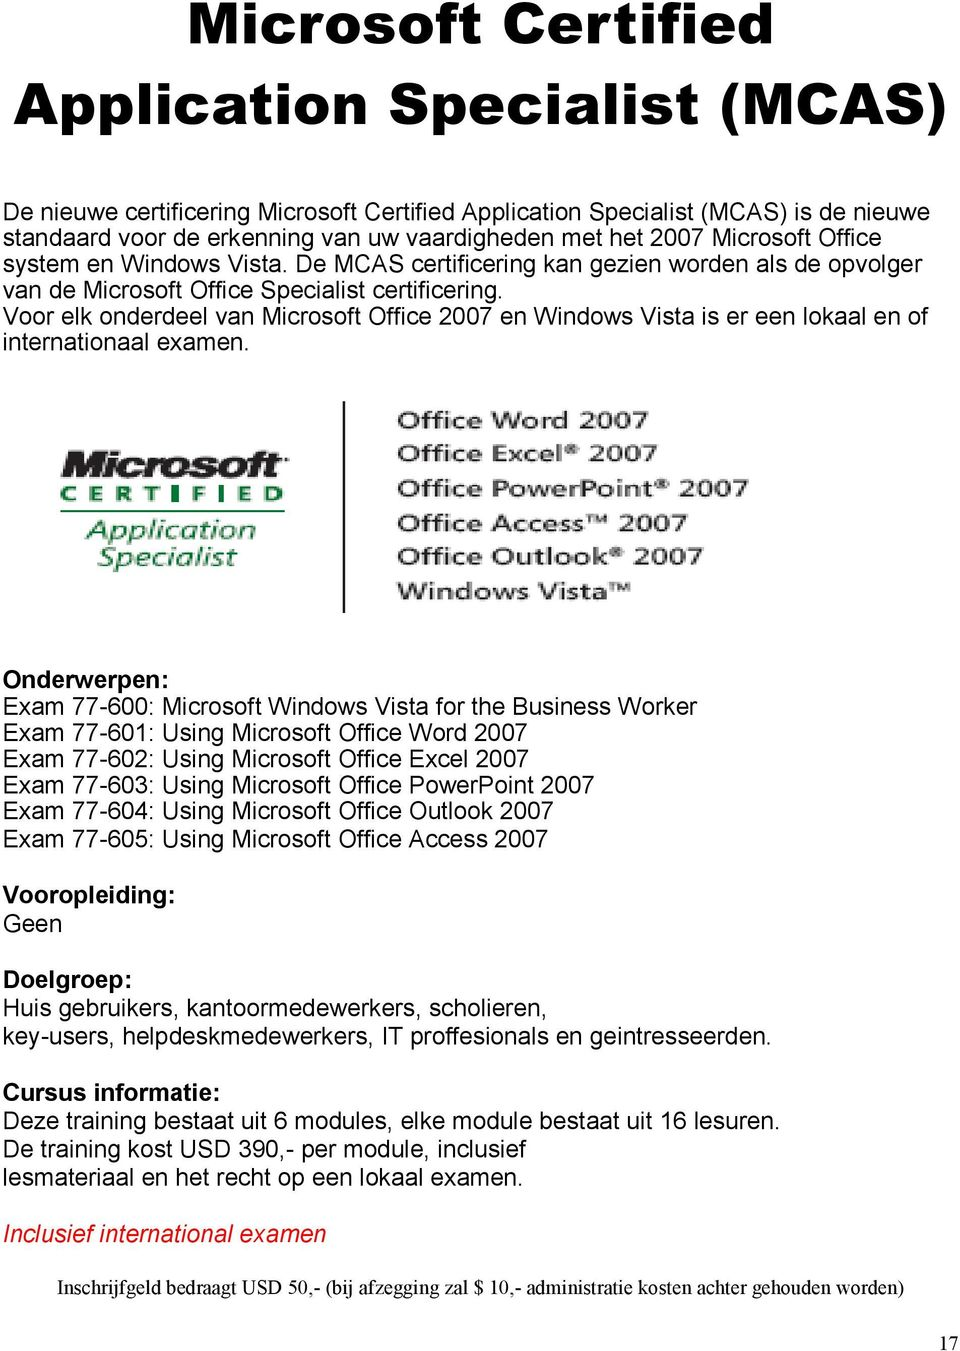 Voor elk onderdeel van Microsoft Office 2007 en Windows Vista is er een lokaal en of internationaal examen.